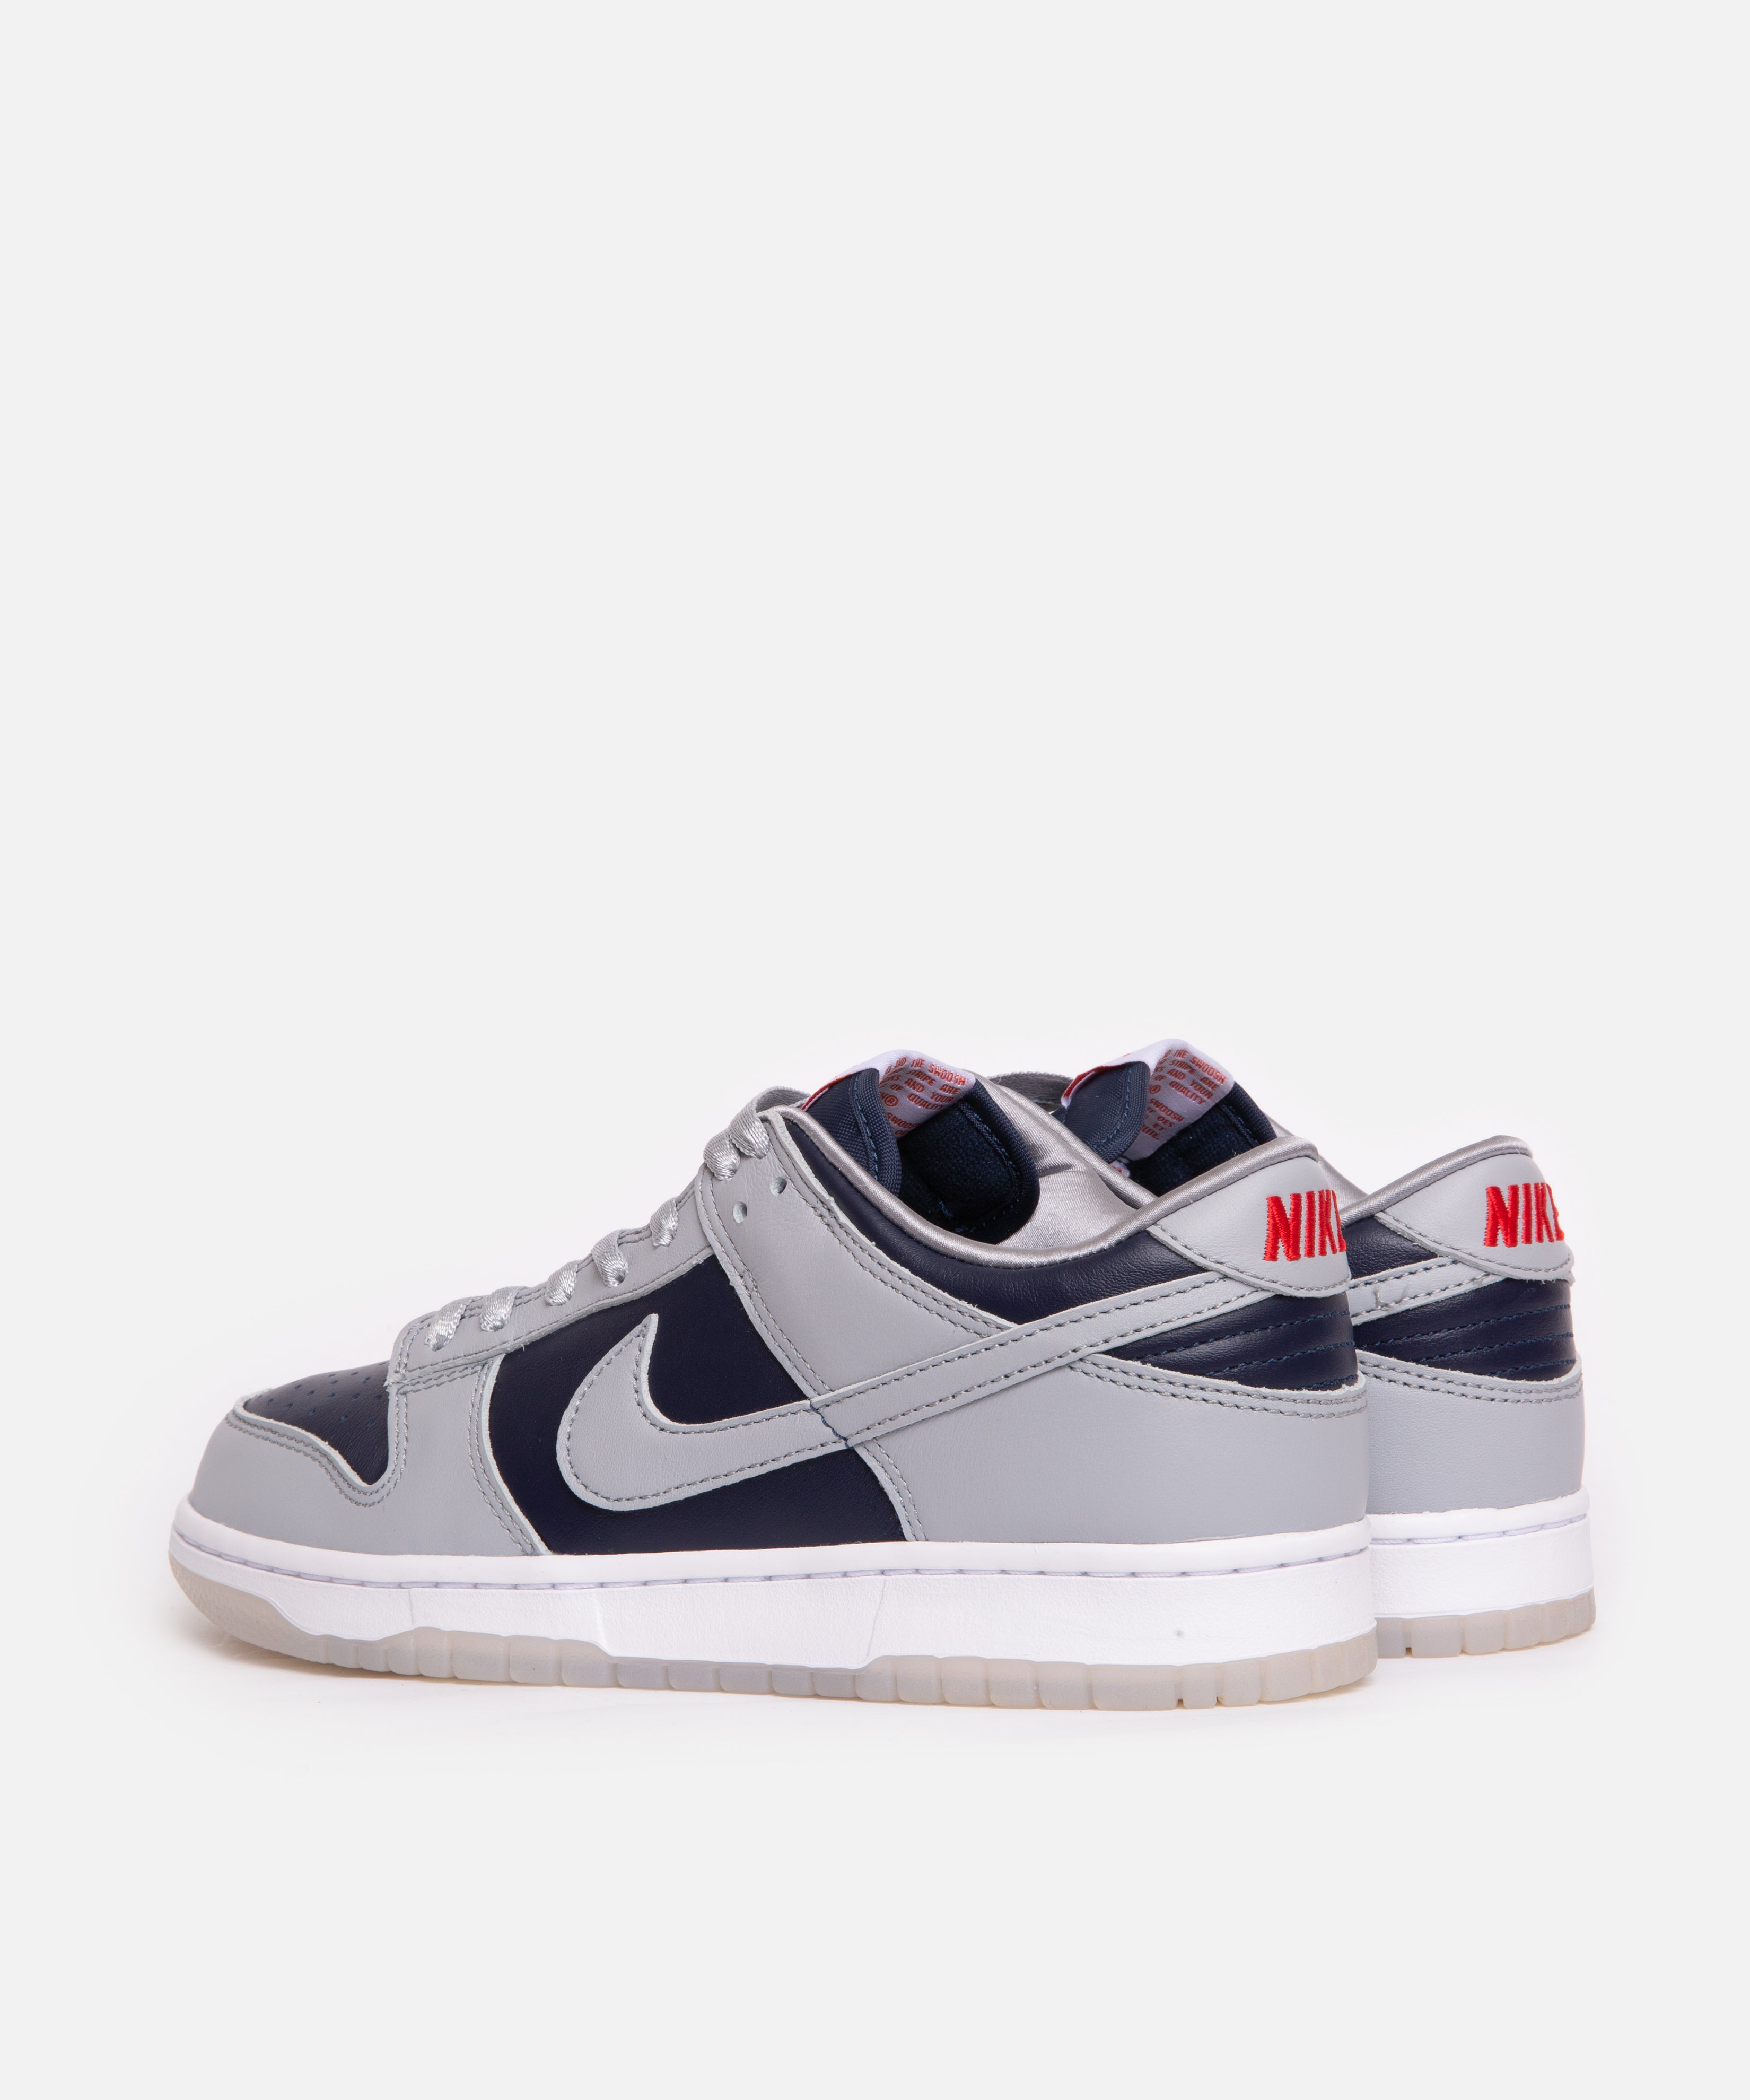 WMNS Nike Dunk Low SP (College Navy/Wolf Grey-University Red)